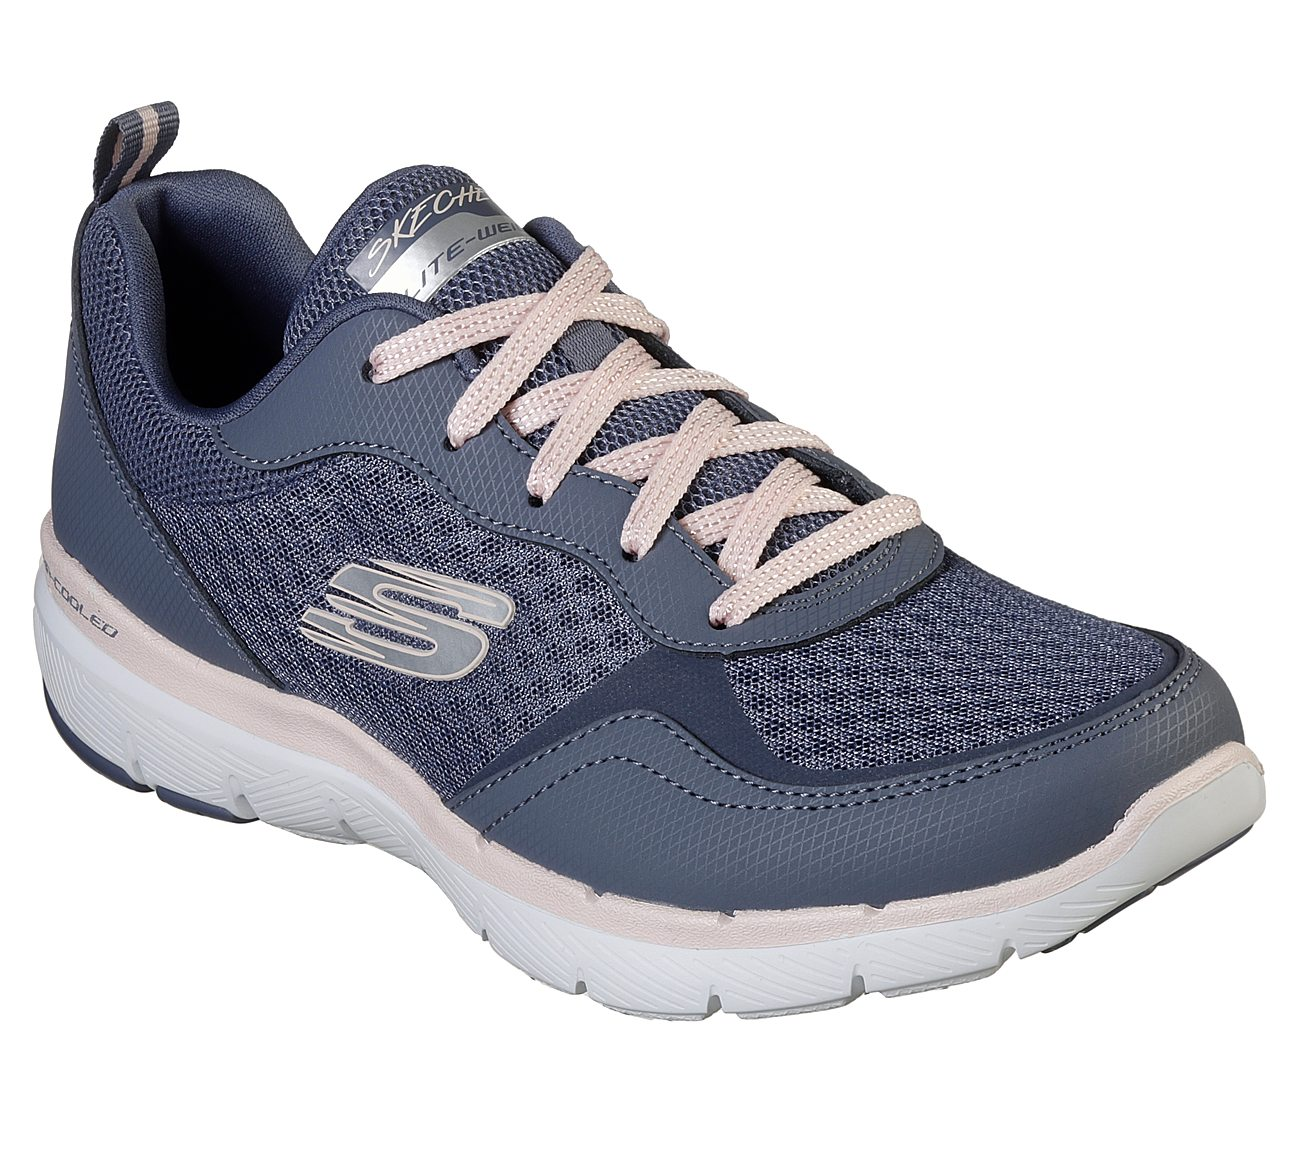 Buy SKECHERS Flex Appeal 3.0 Go Forward Flex Appeal Shoes